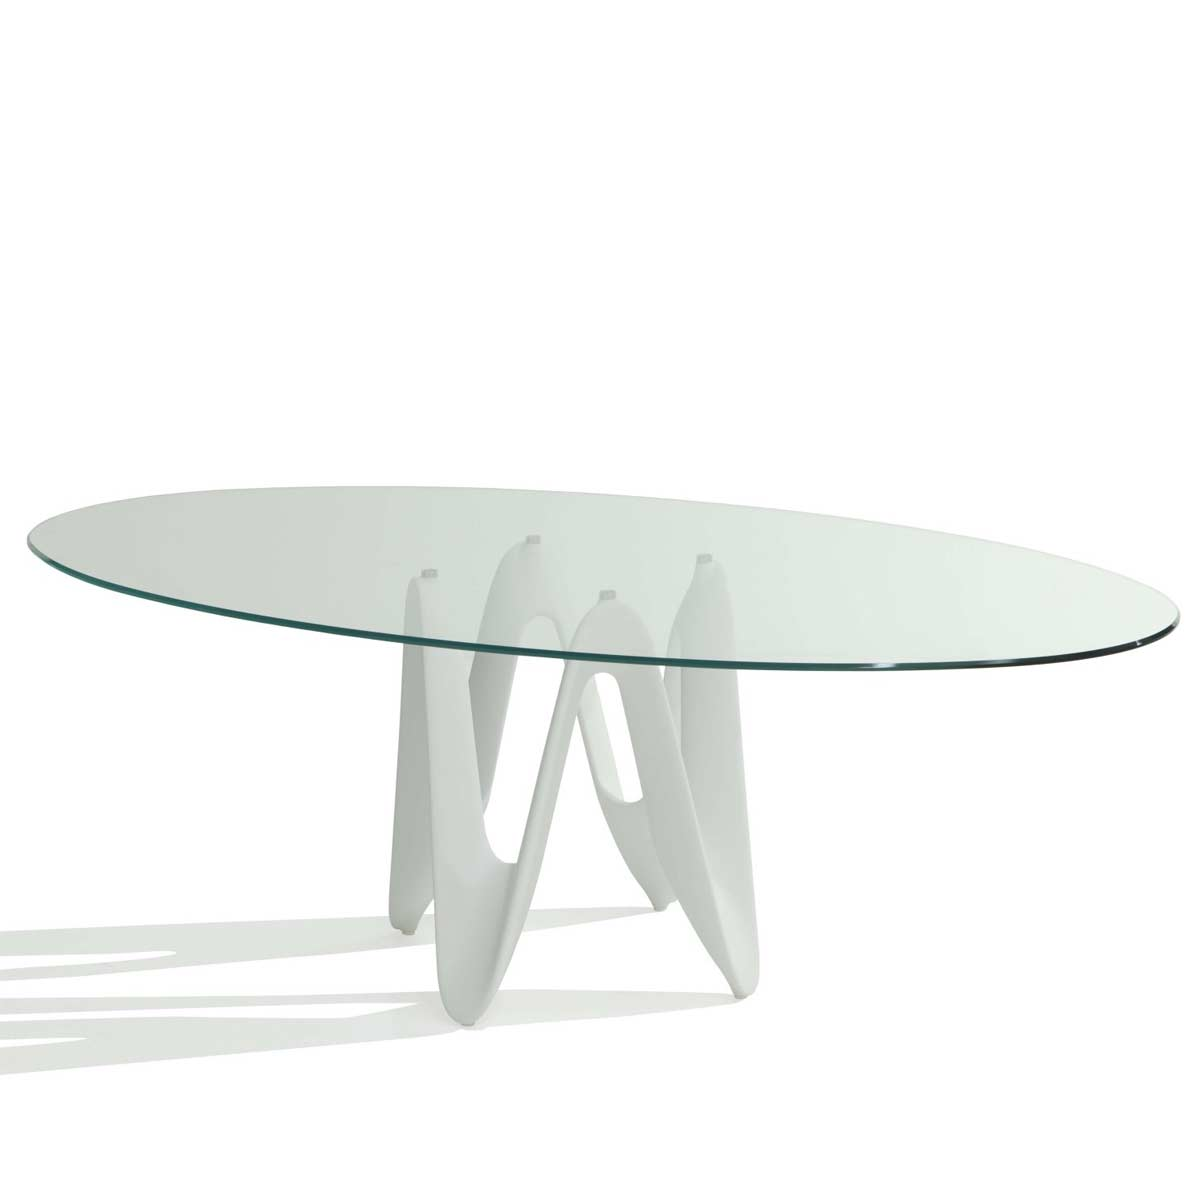 Lambda oval glass dining table klarity glass furniture Glass dining table